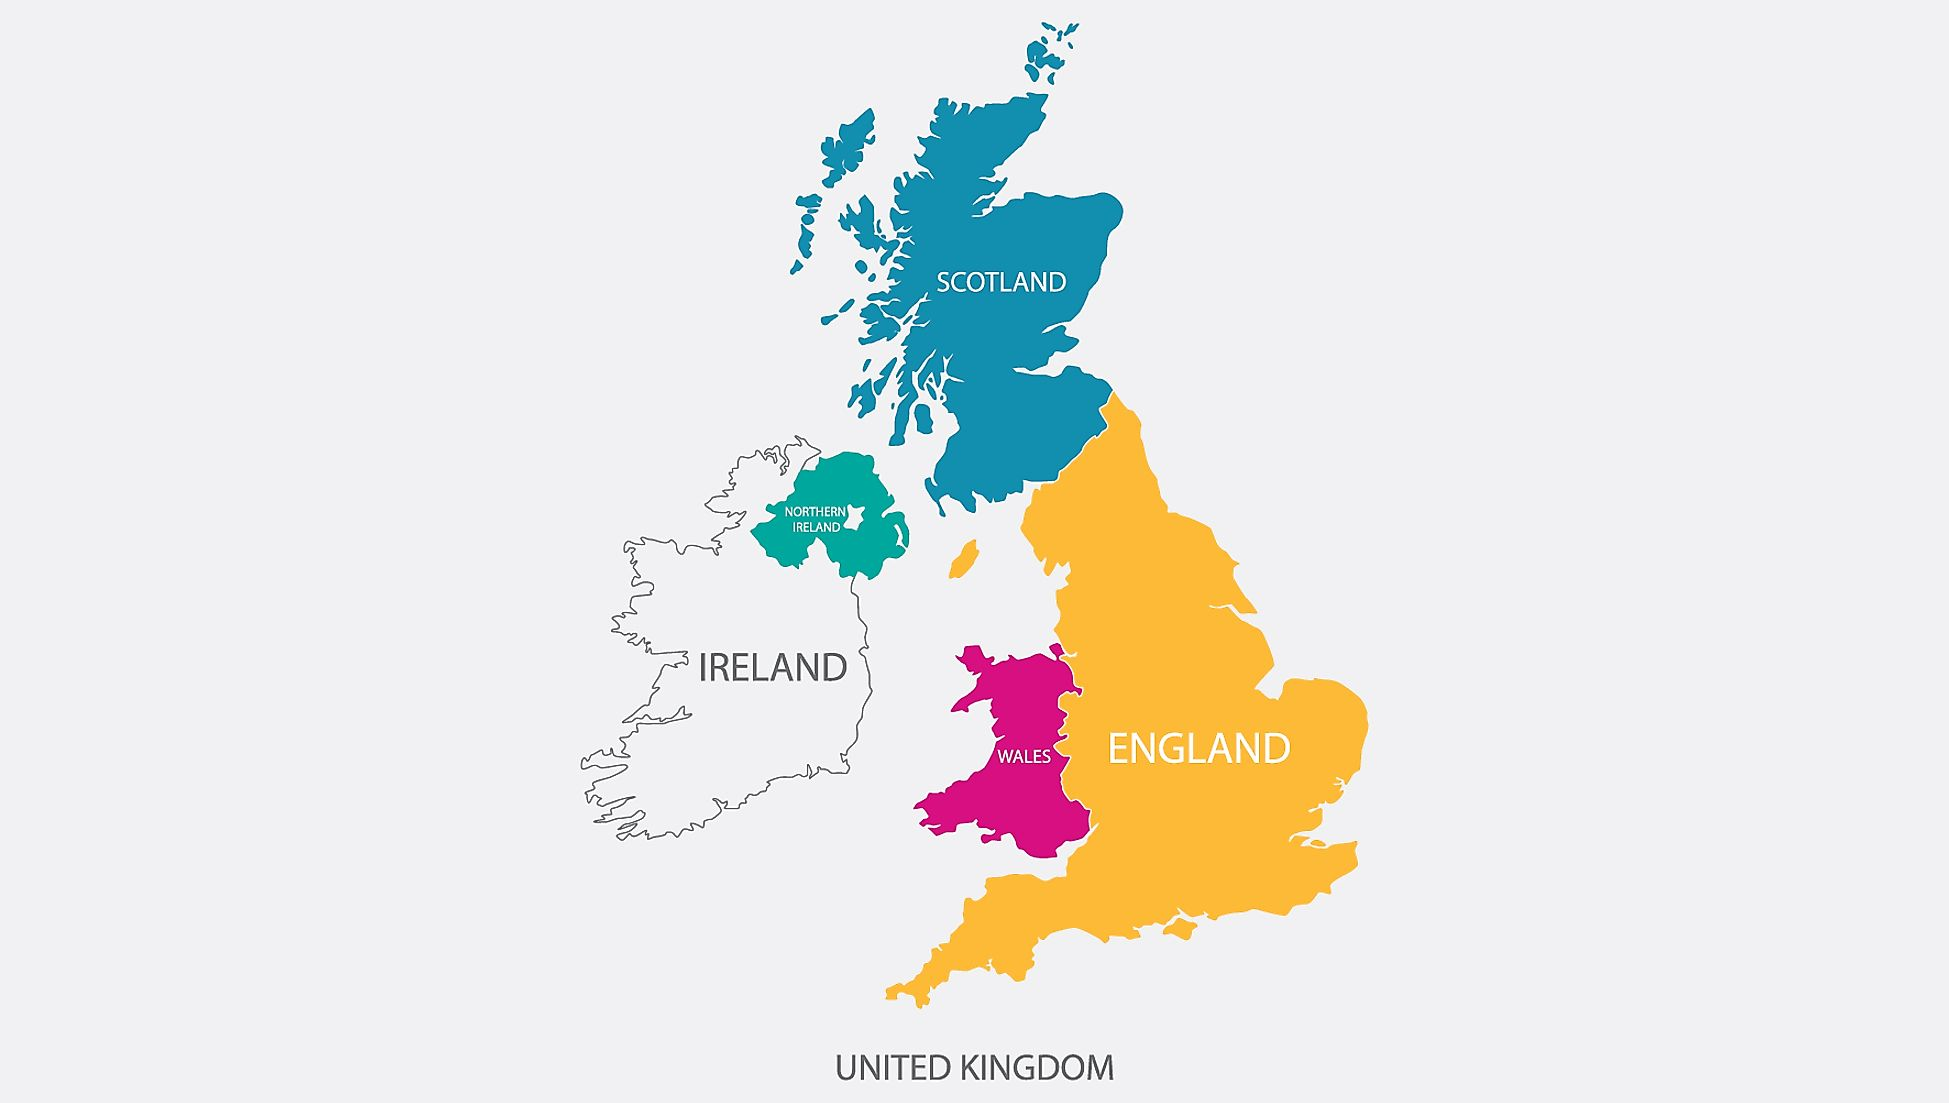 Map of the countries that make up the United Kingdom